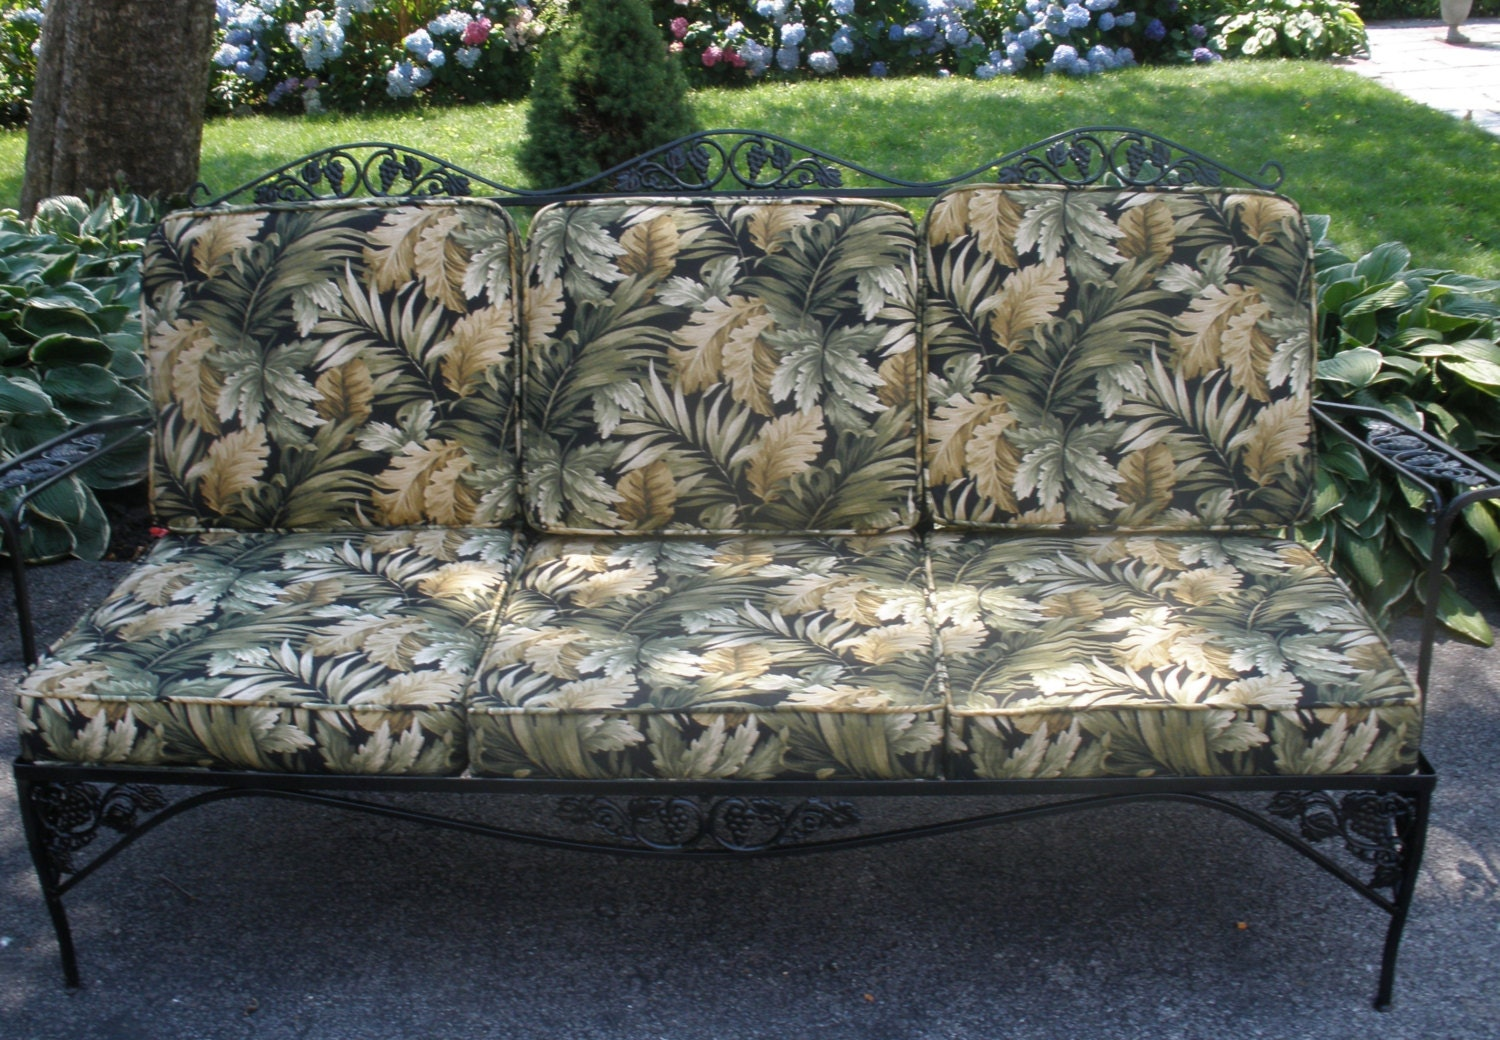 Wrought Iron Sofa Couch Woodard Grapes Leaves Tropical